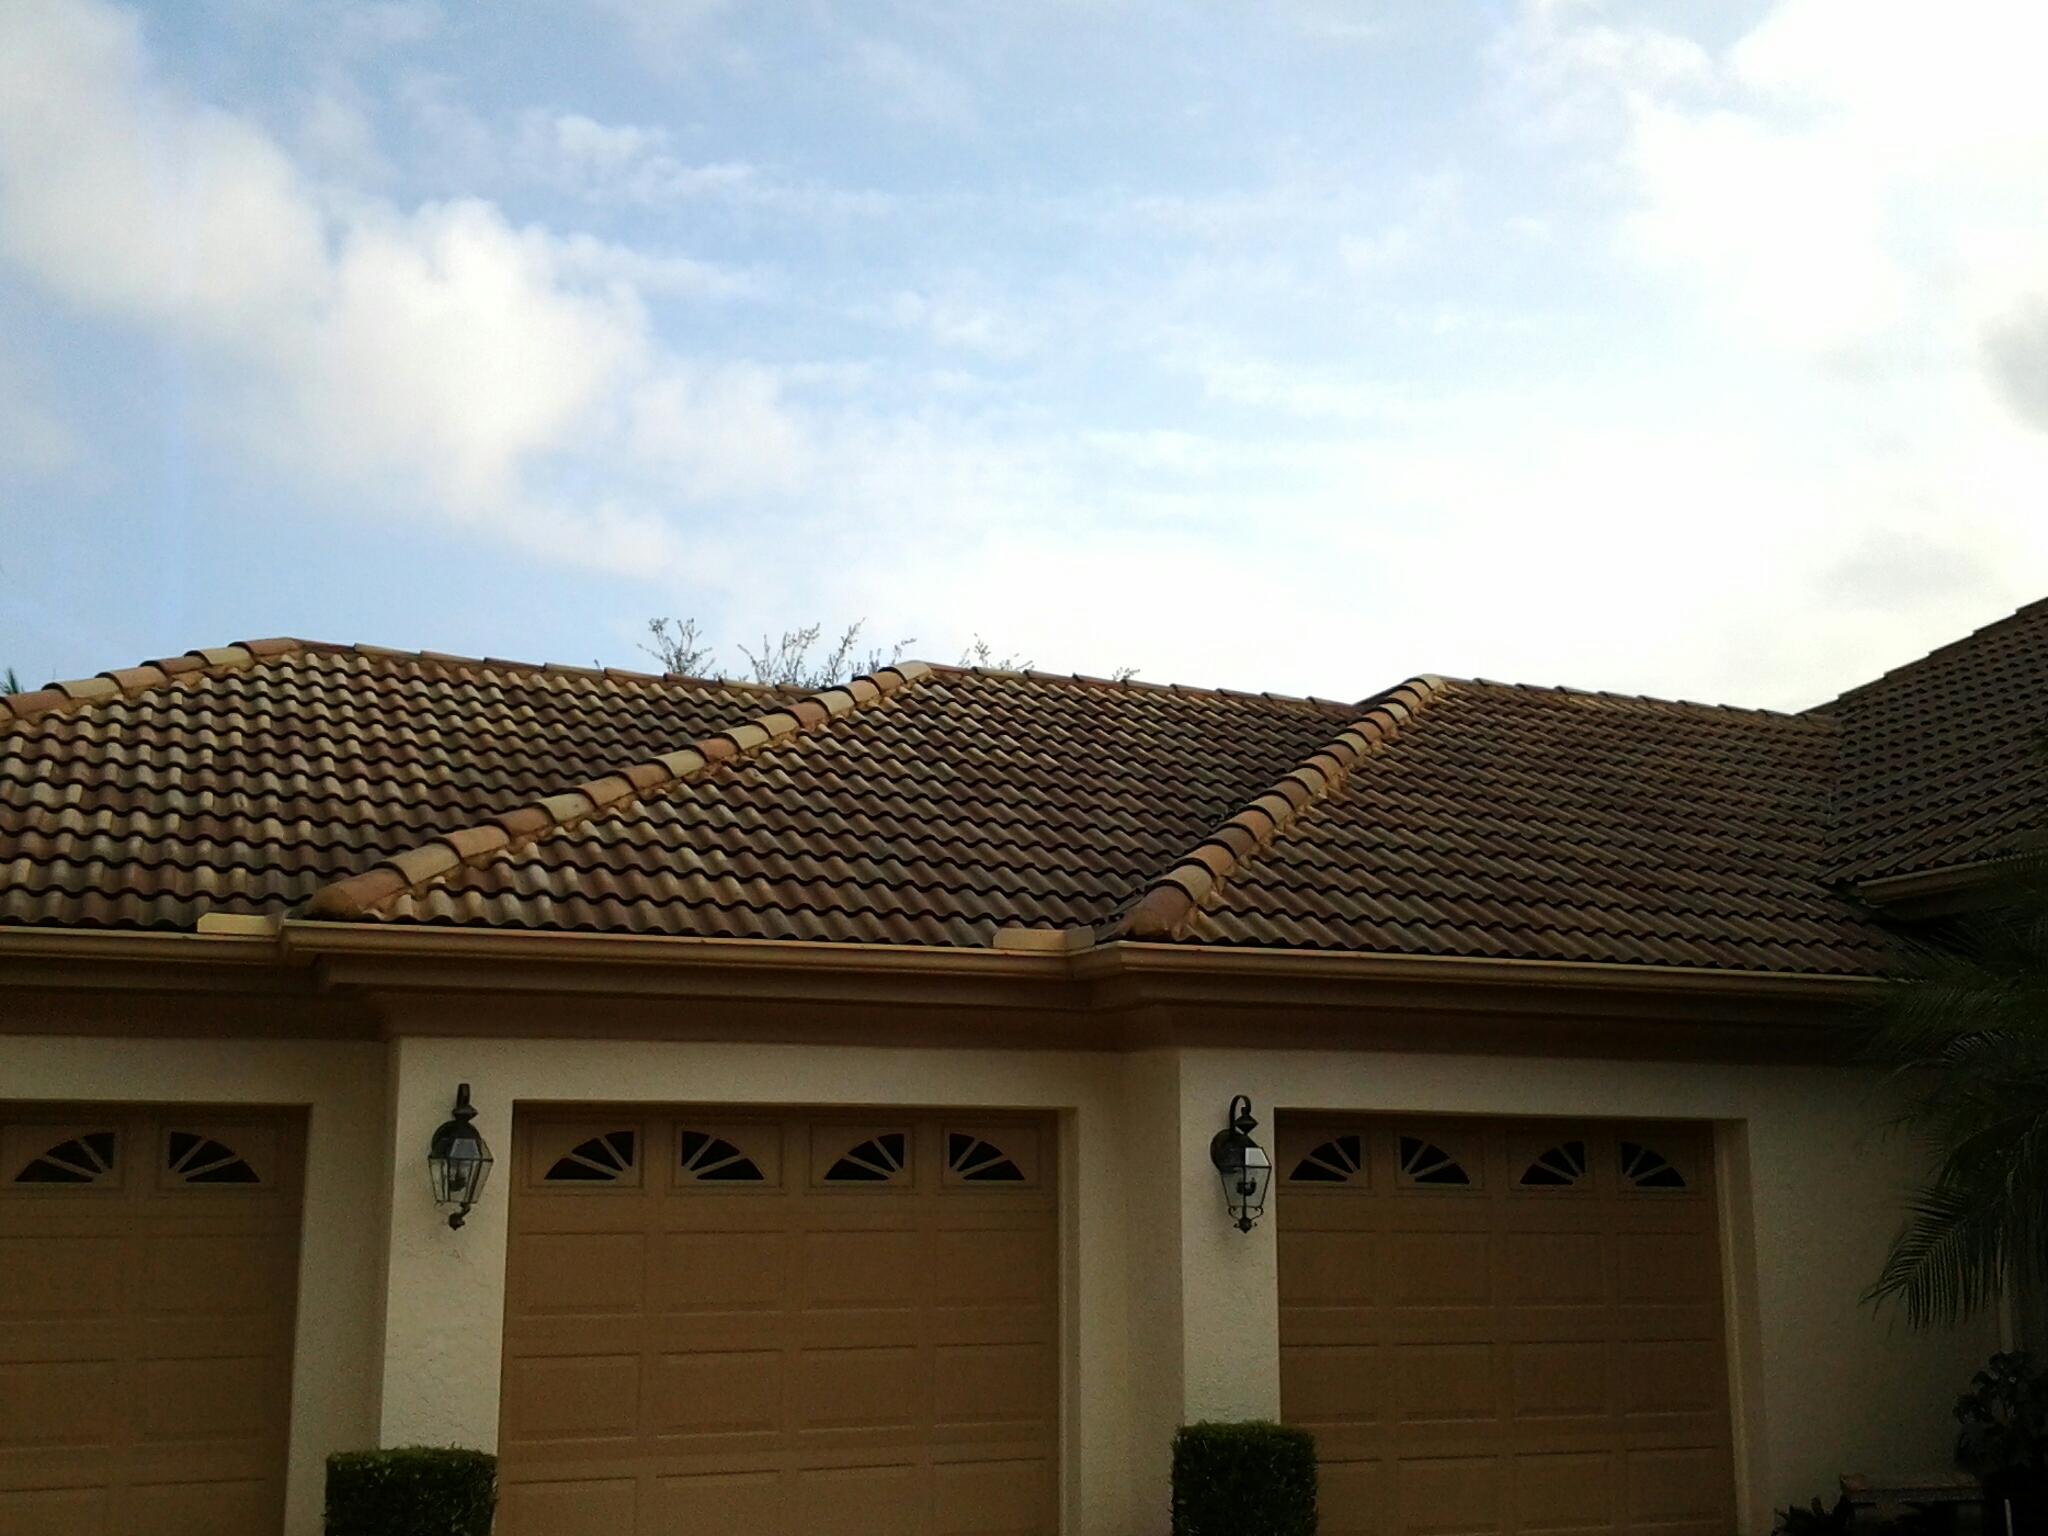 West Palm Beach, FL - Roof a cide in West Palm Beach Duane & Gary Earl W.Johnston Roofing Roof A Cide takes 100 % control of mold, mildew, fungus and algae taking over your roof.